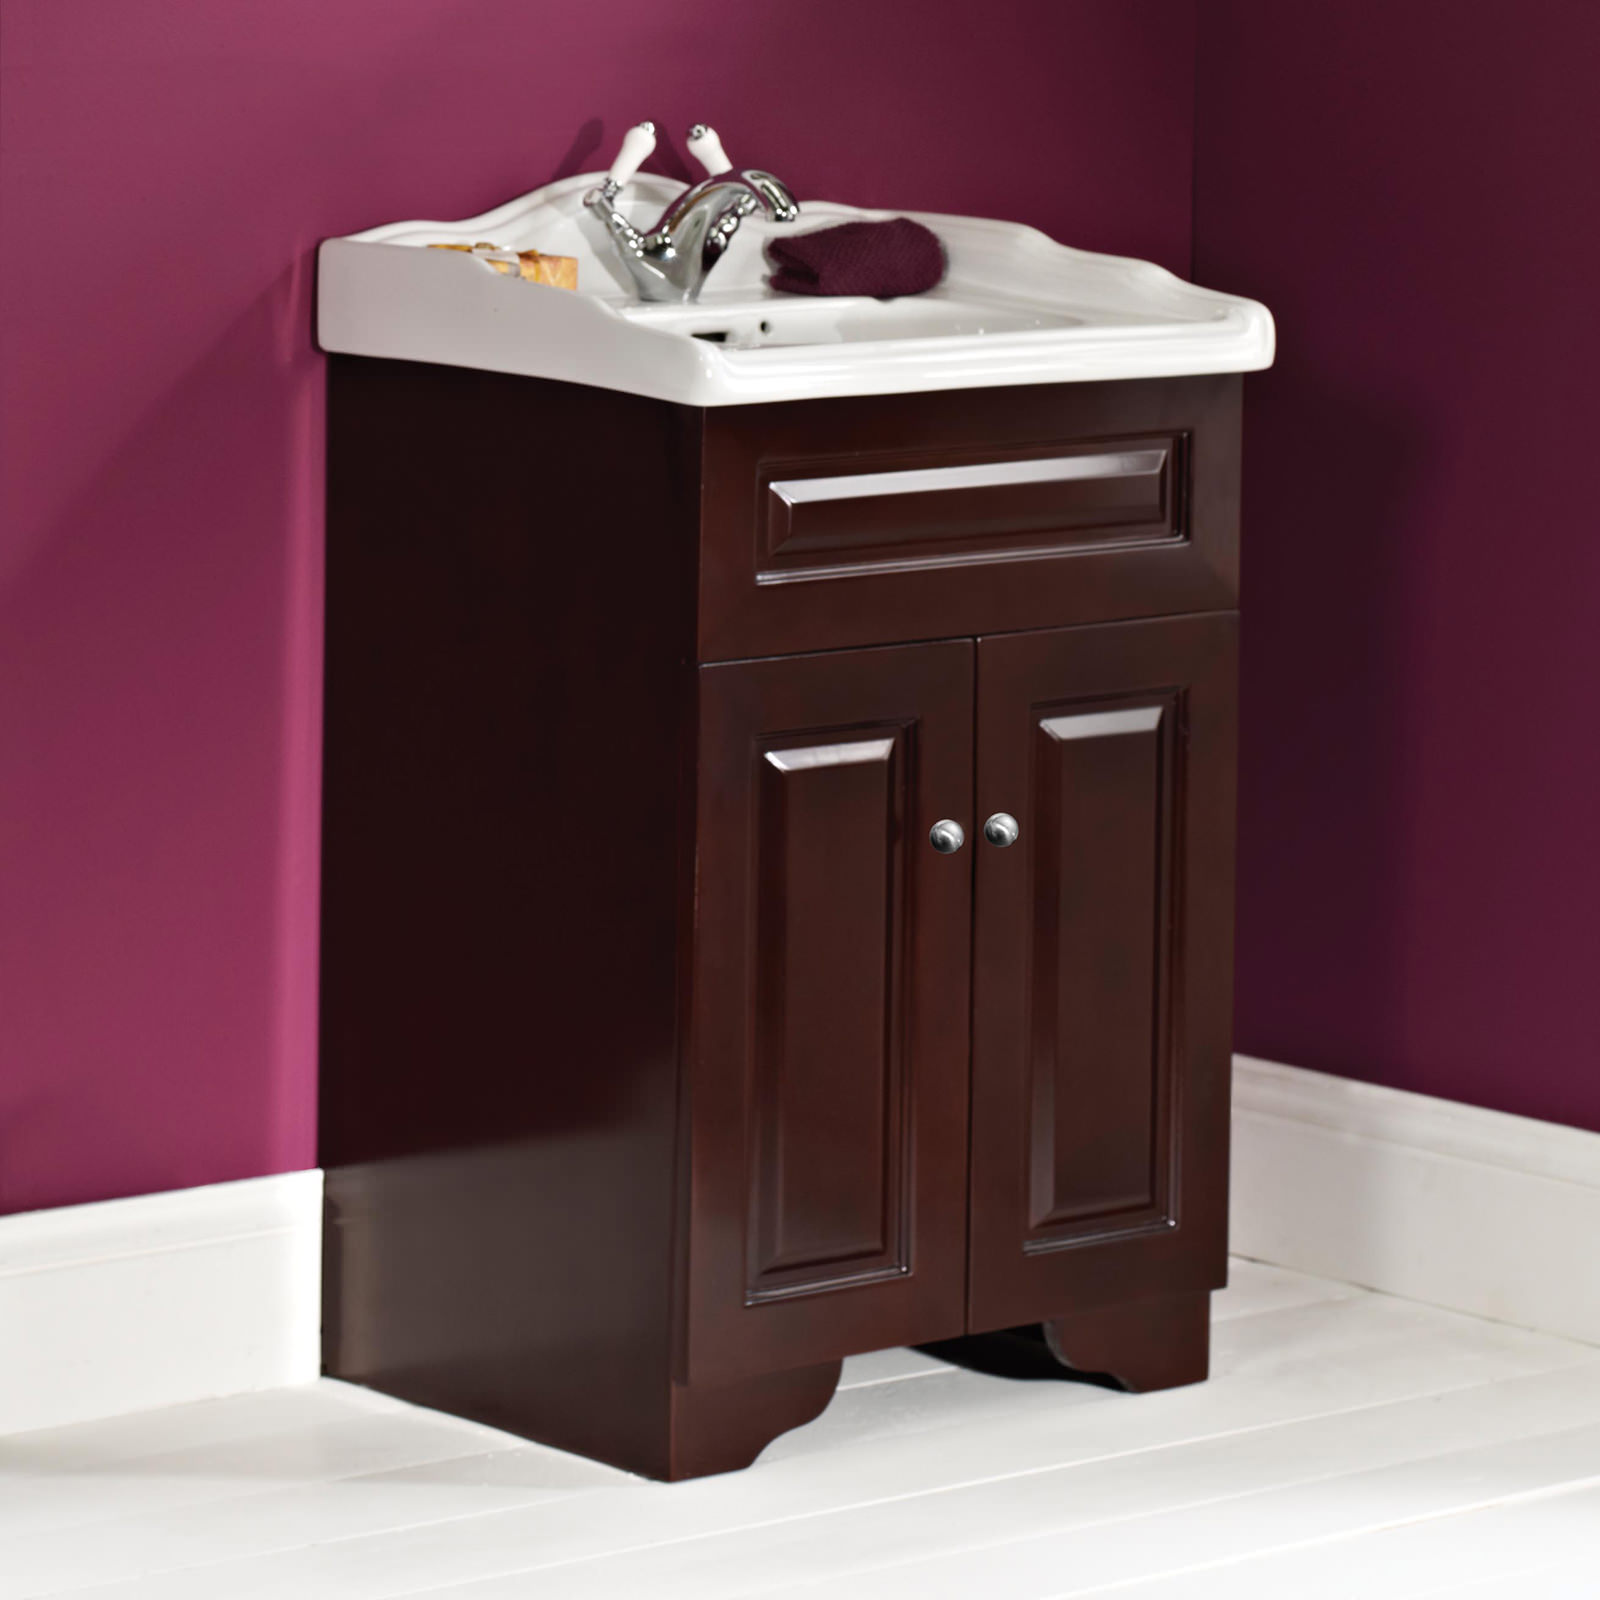 Phoenix Balmoral Solid Wood Base Unit With Square Basin